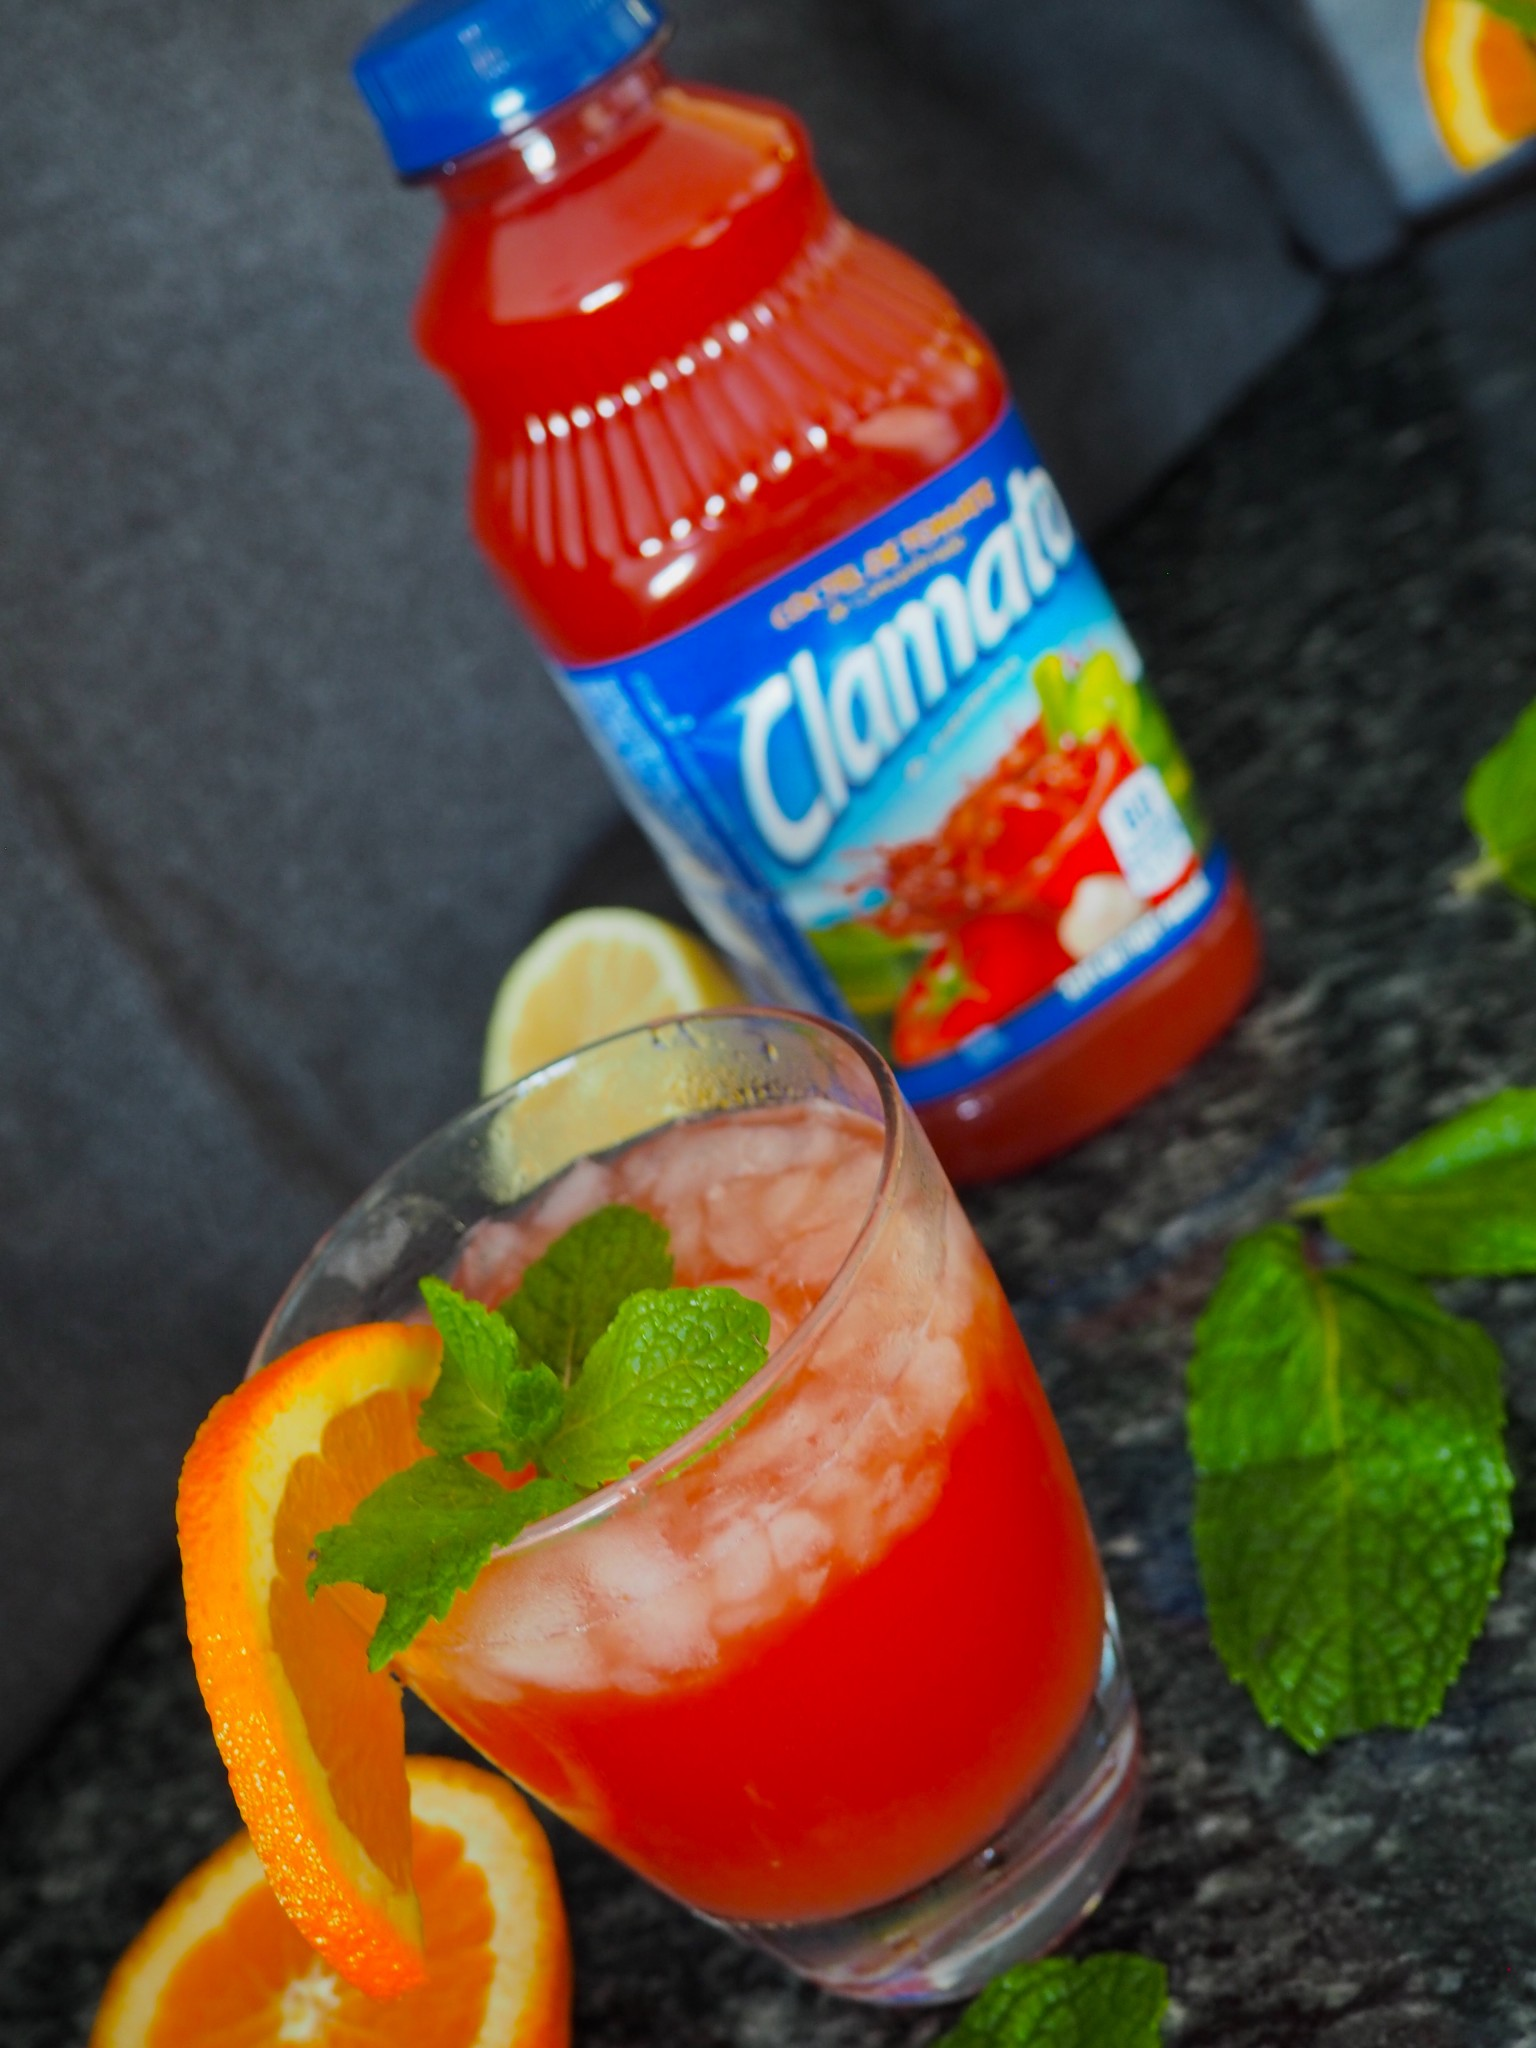 Clamato Holiday Refresher10